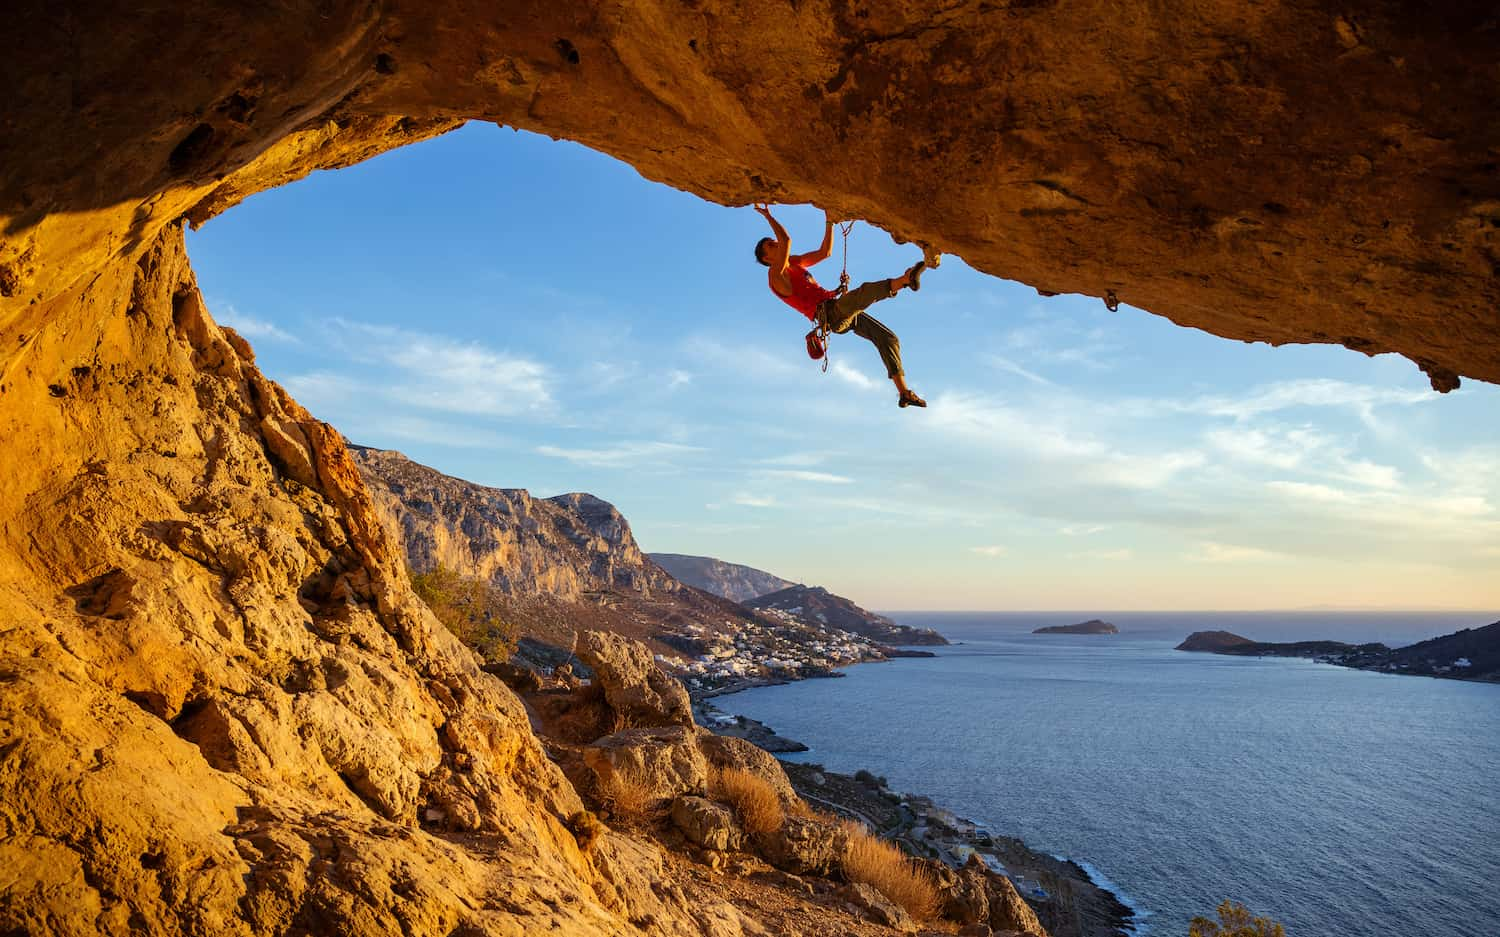 Rock climber hanging above the sea